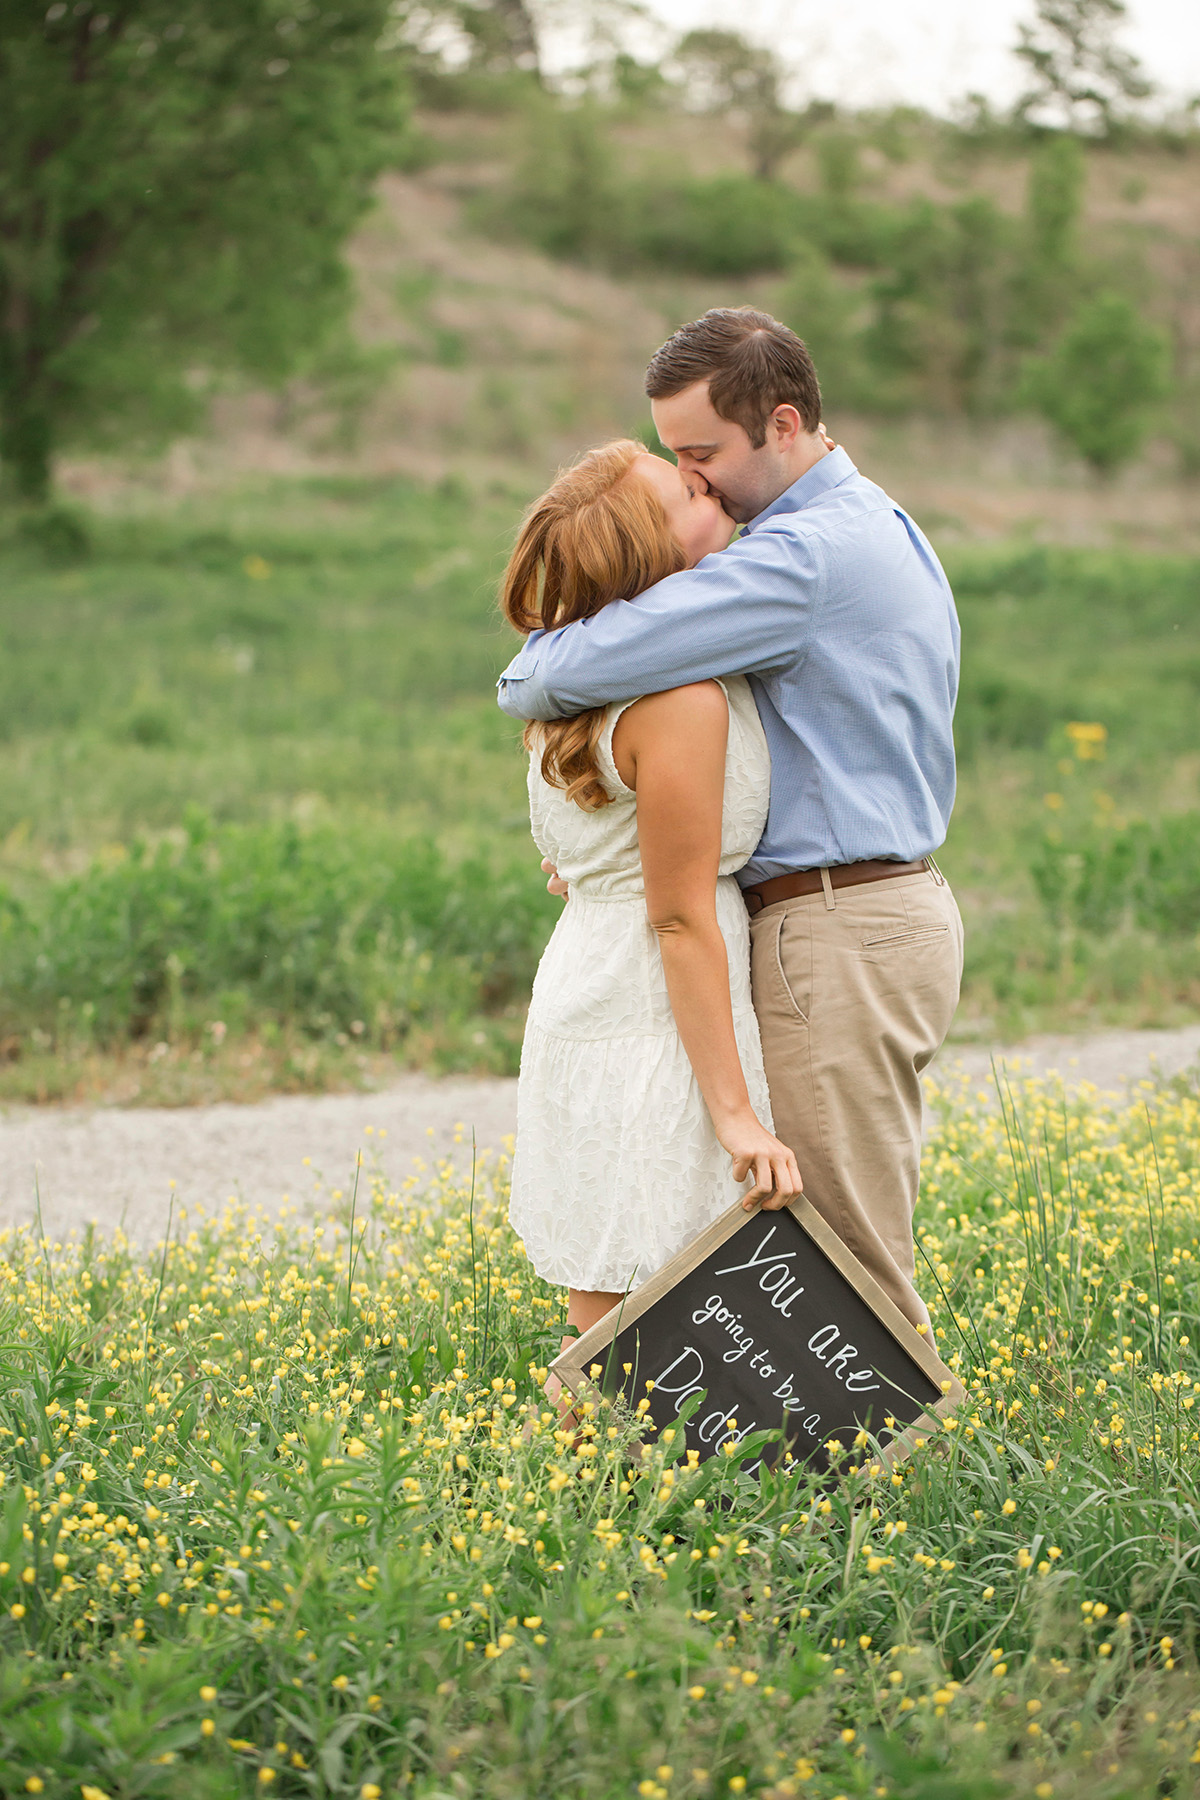 Louisville newborn photographer | julie brock photography | fun pregnancy announcement | louisville maternity photographer | he was surprised by his wife that she is pregnant